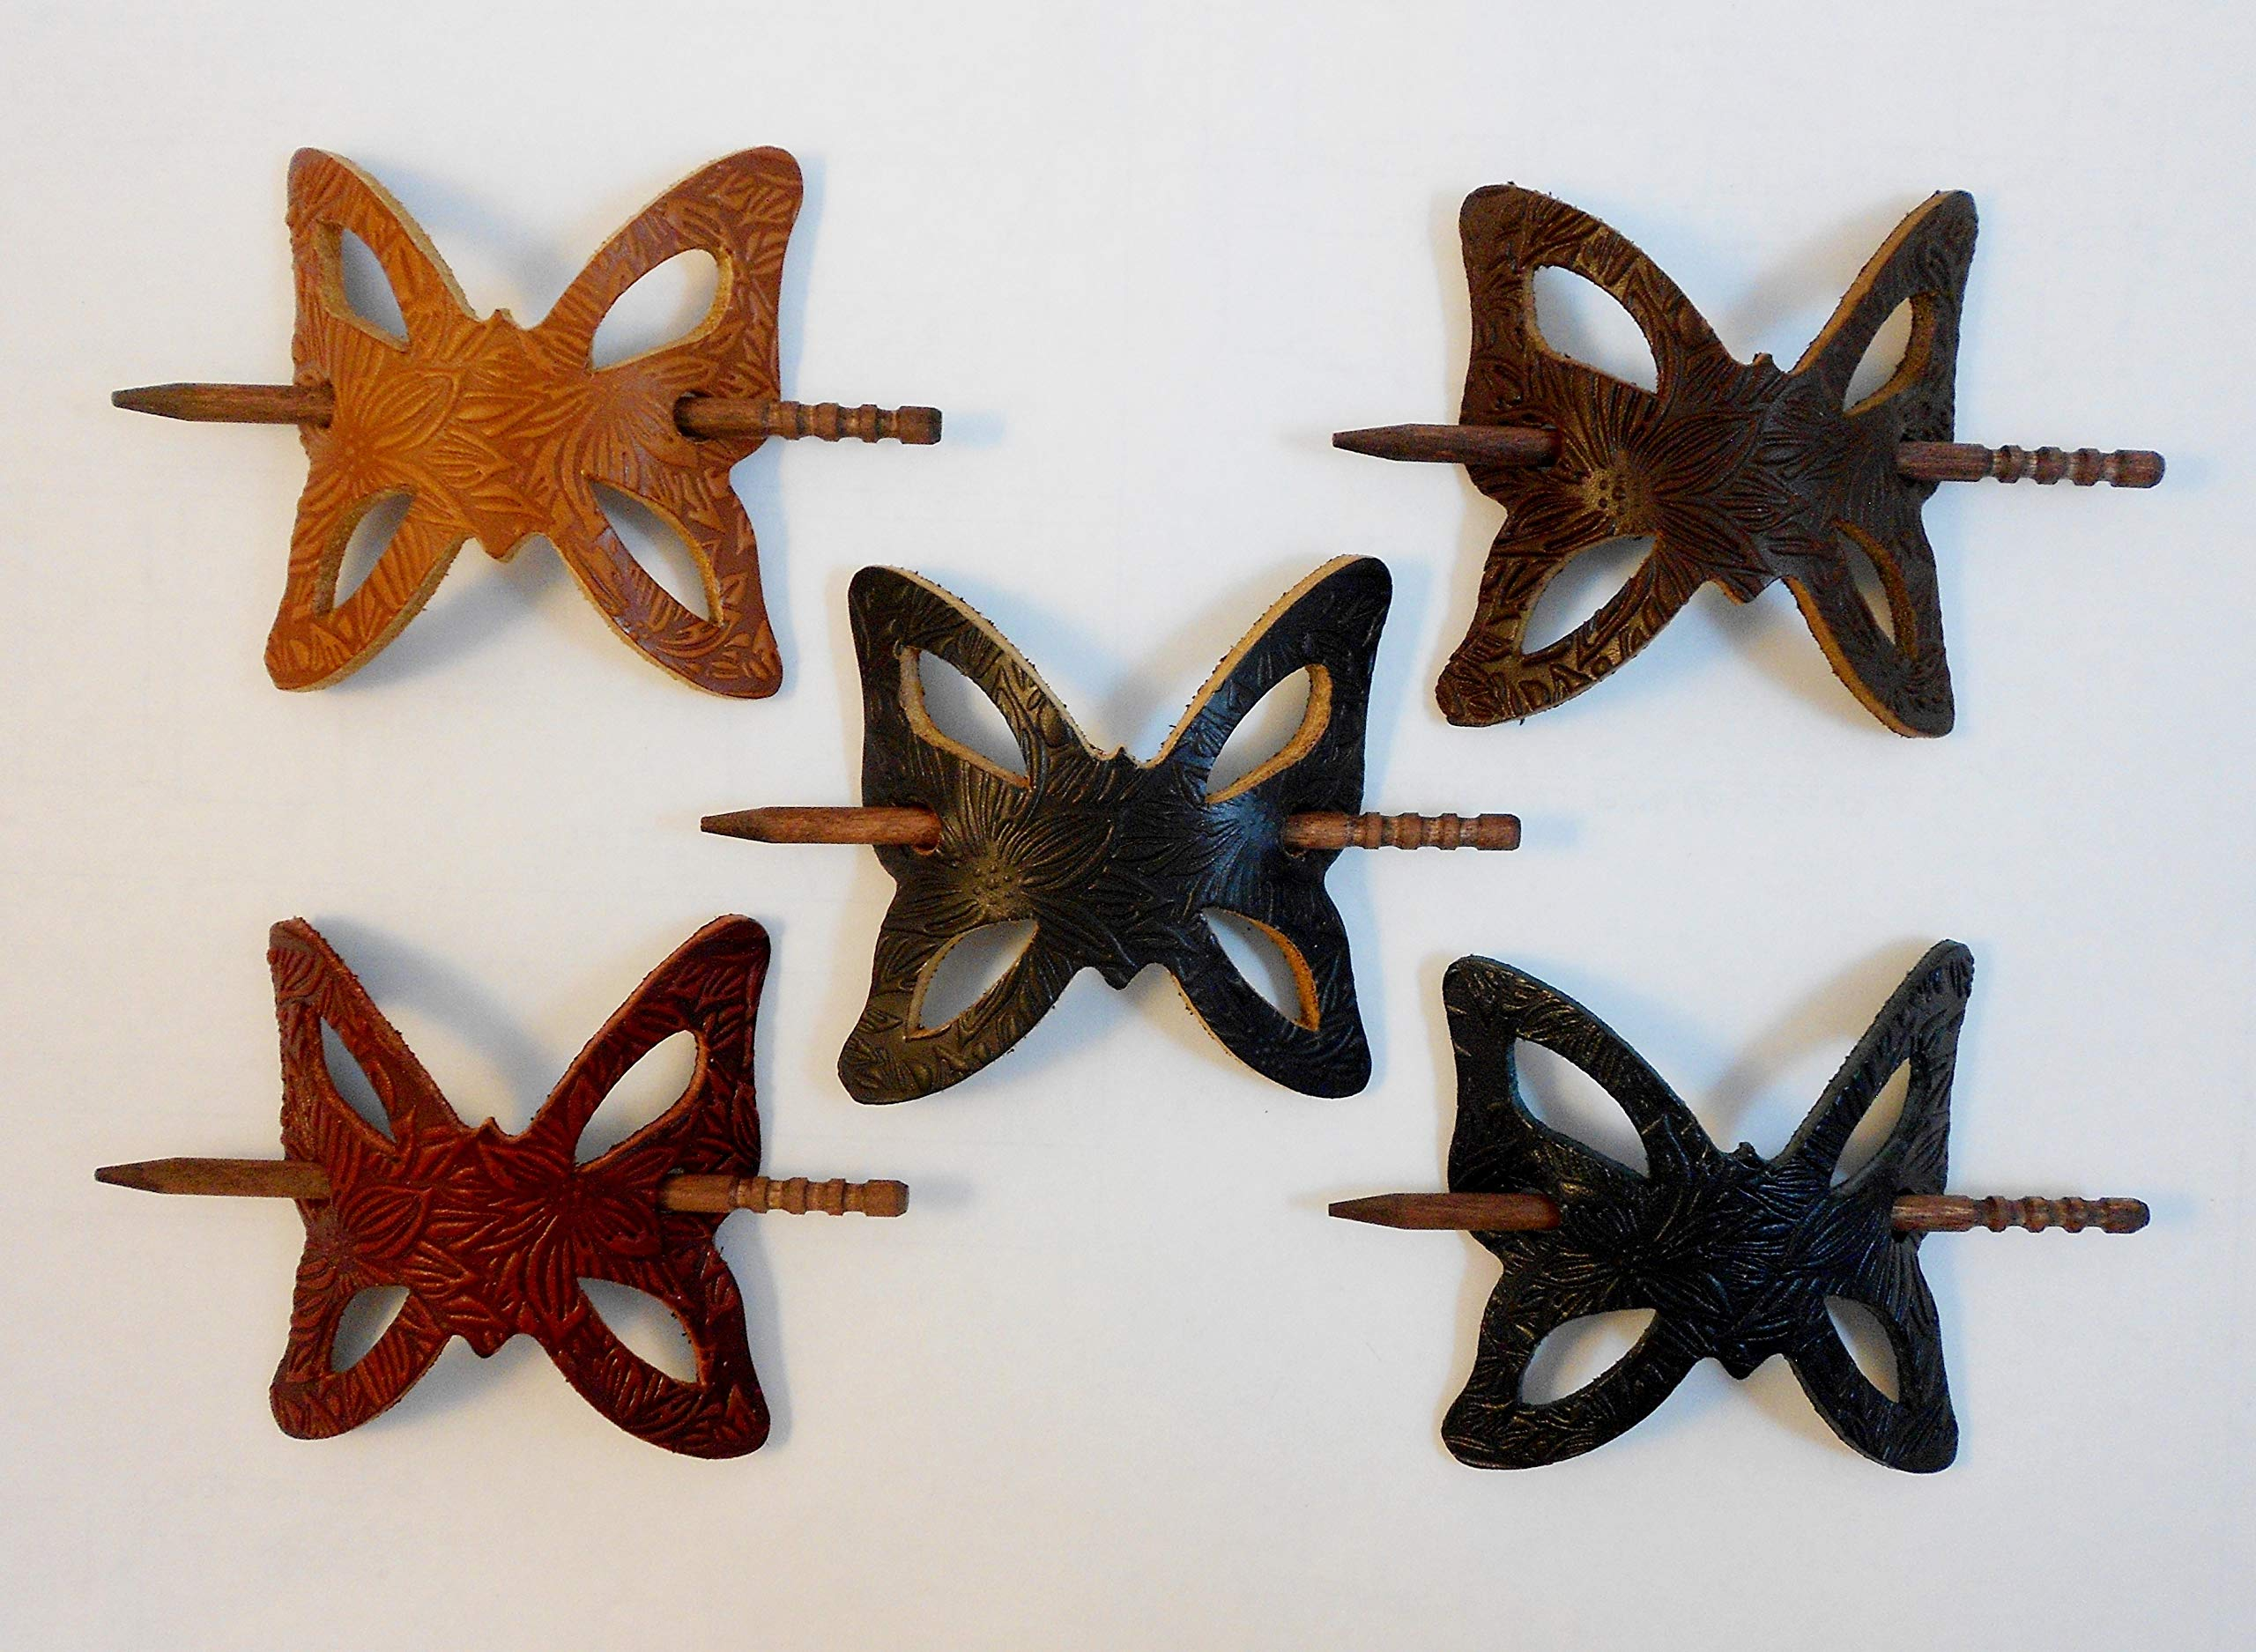 2 Tooled Leather Butterfly Hair Barrettes w Sticks, Ponytail Holders, Floral Design, Choice of Colors